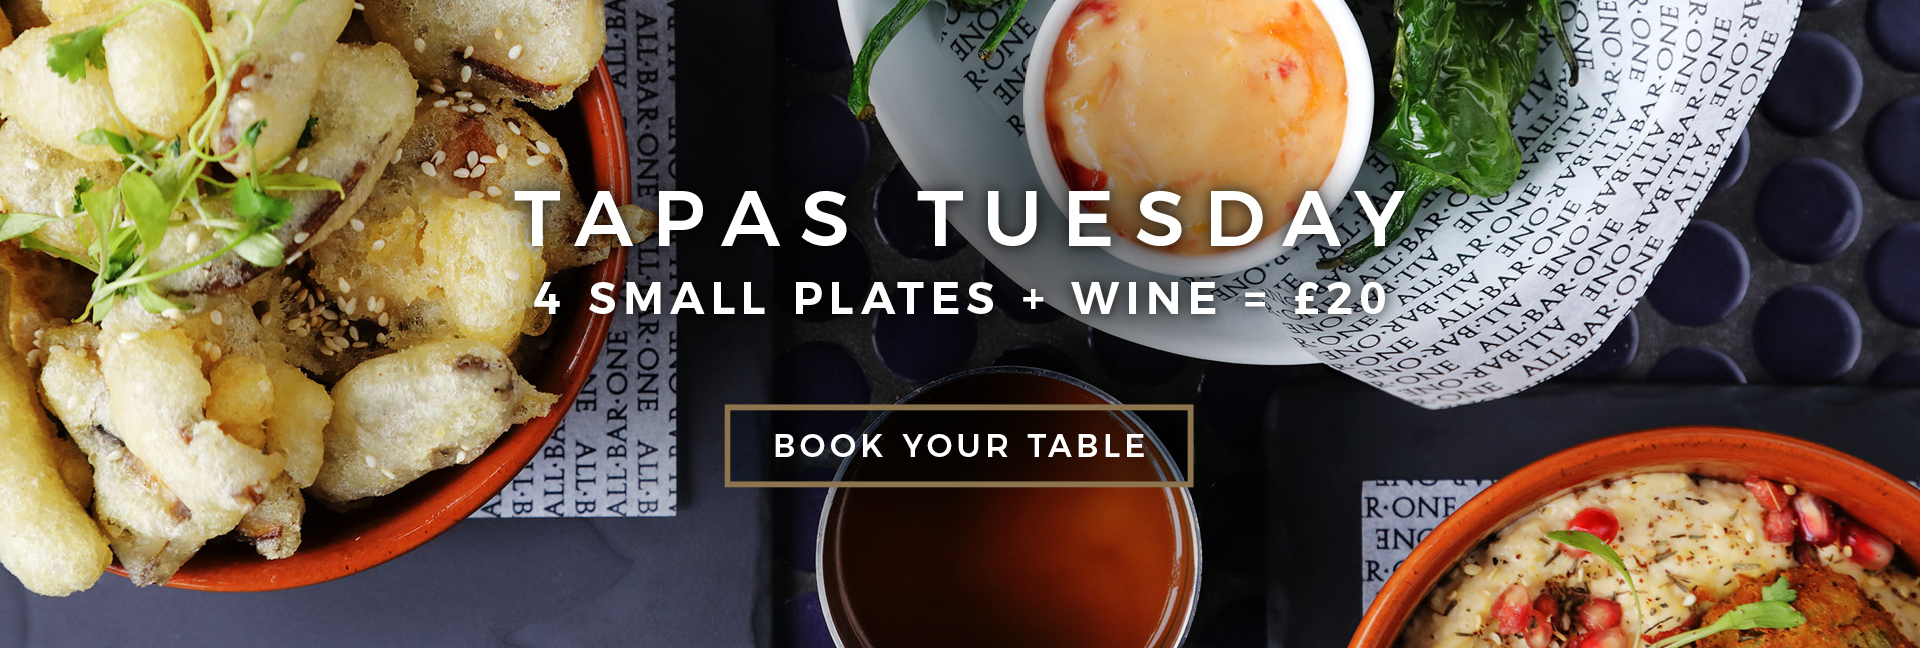 Tapas Tuesday at All Bar One Millennium Square Leeds - Book now